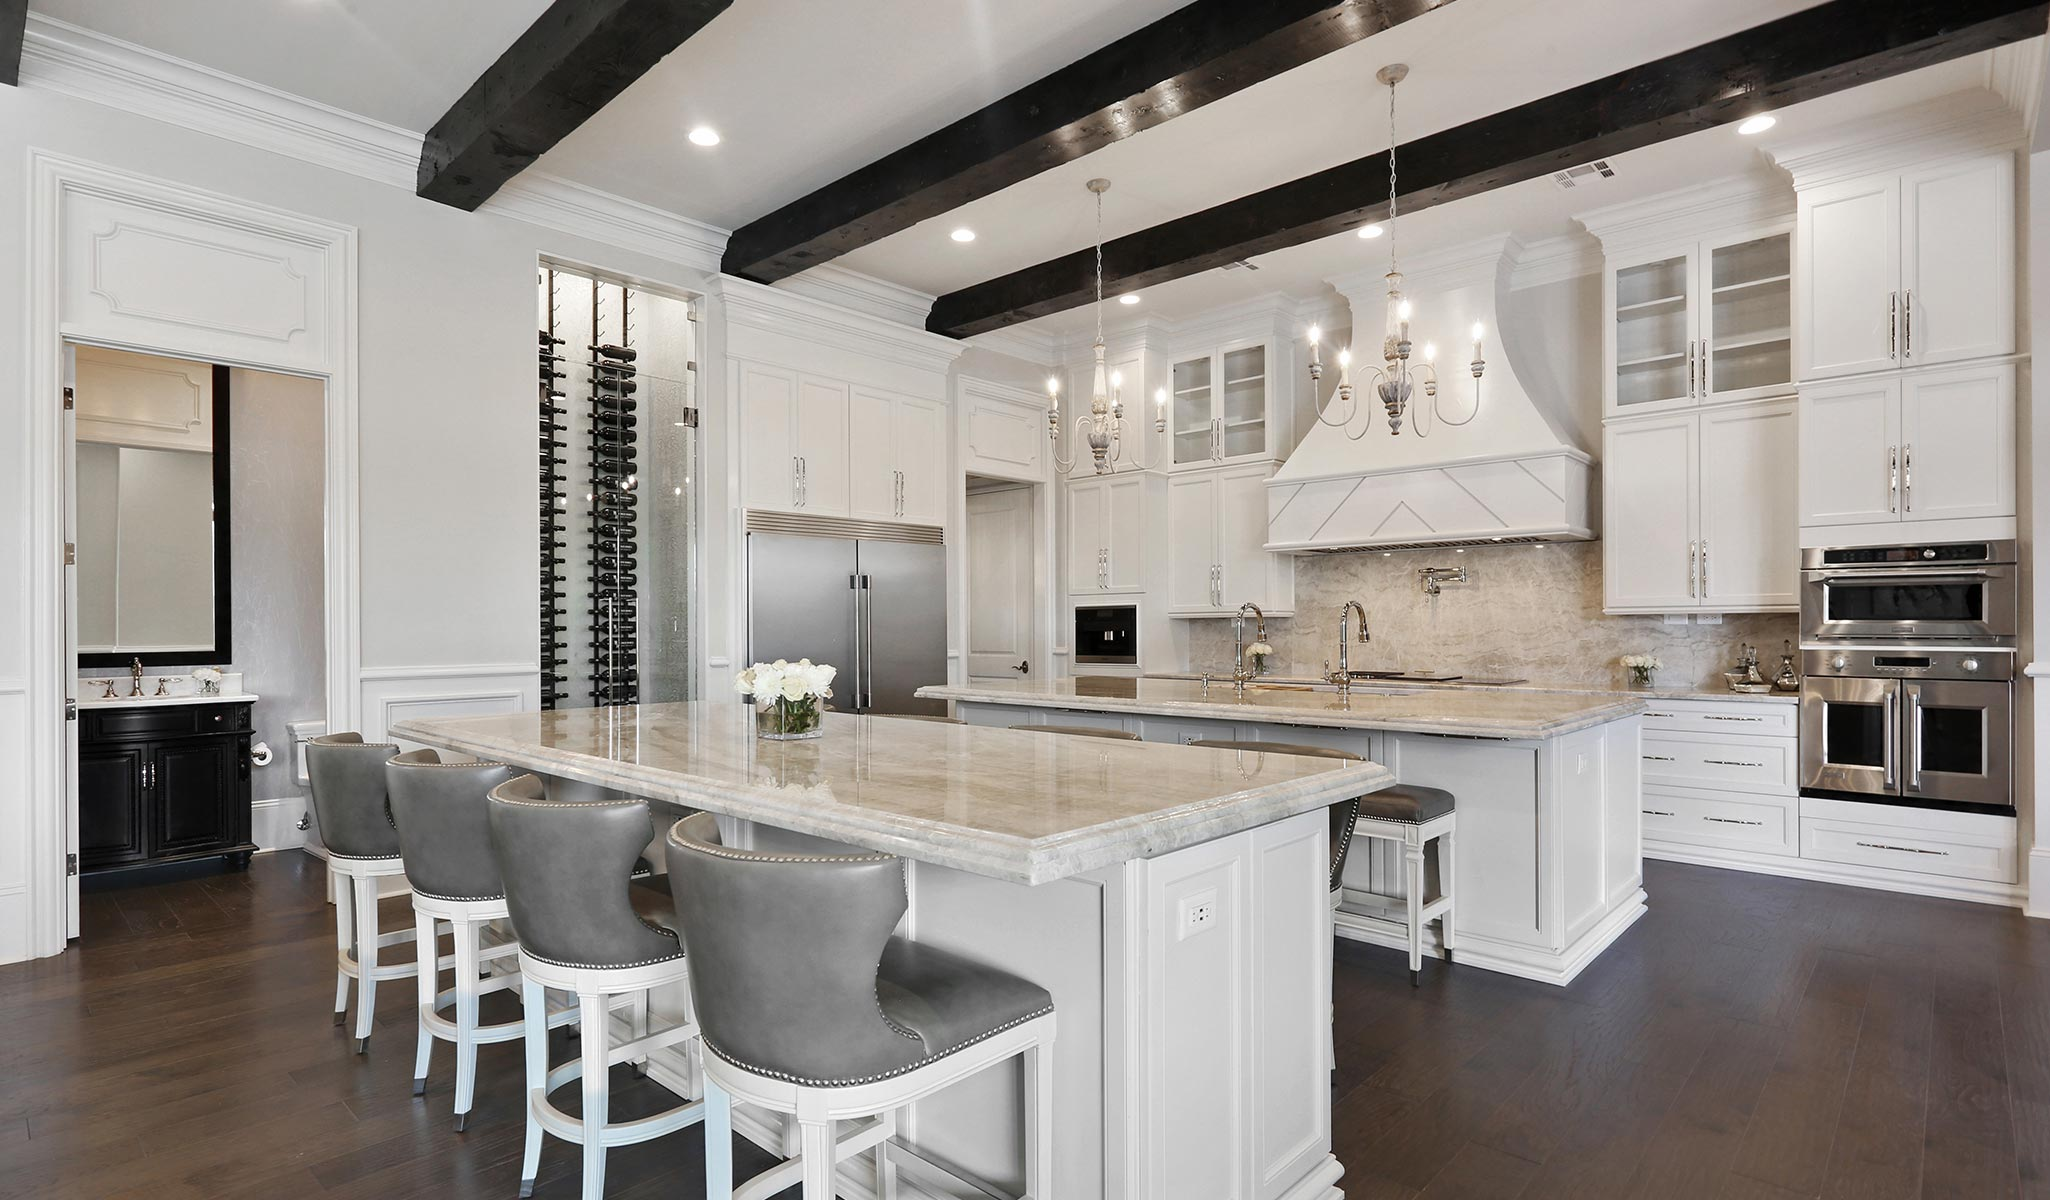 kitchen with bar seating & a wine cooler